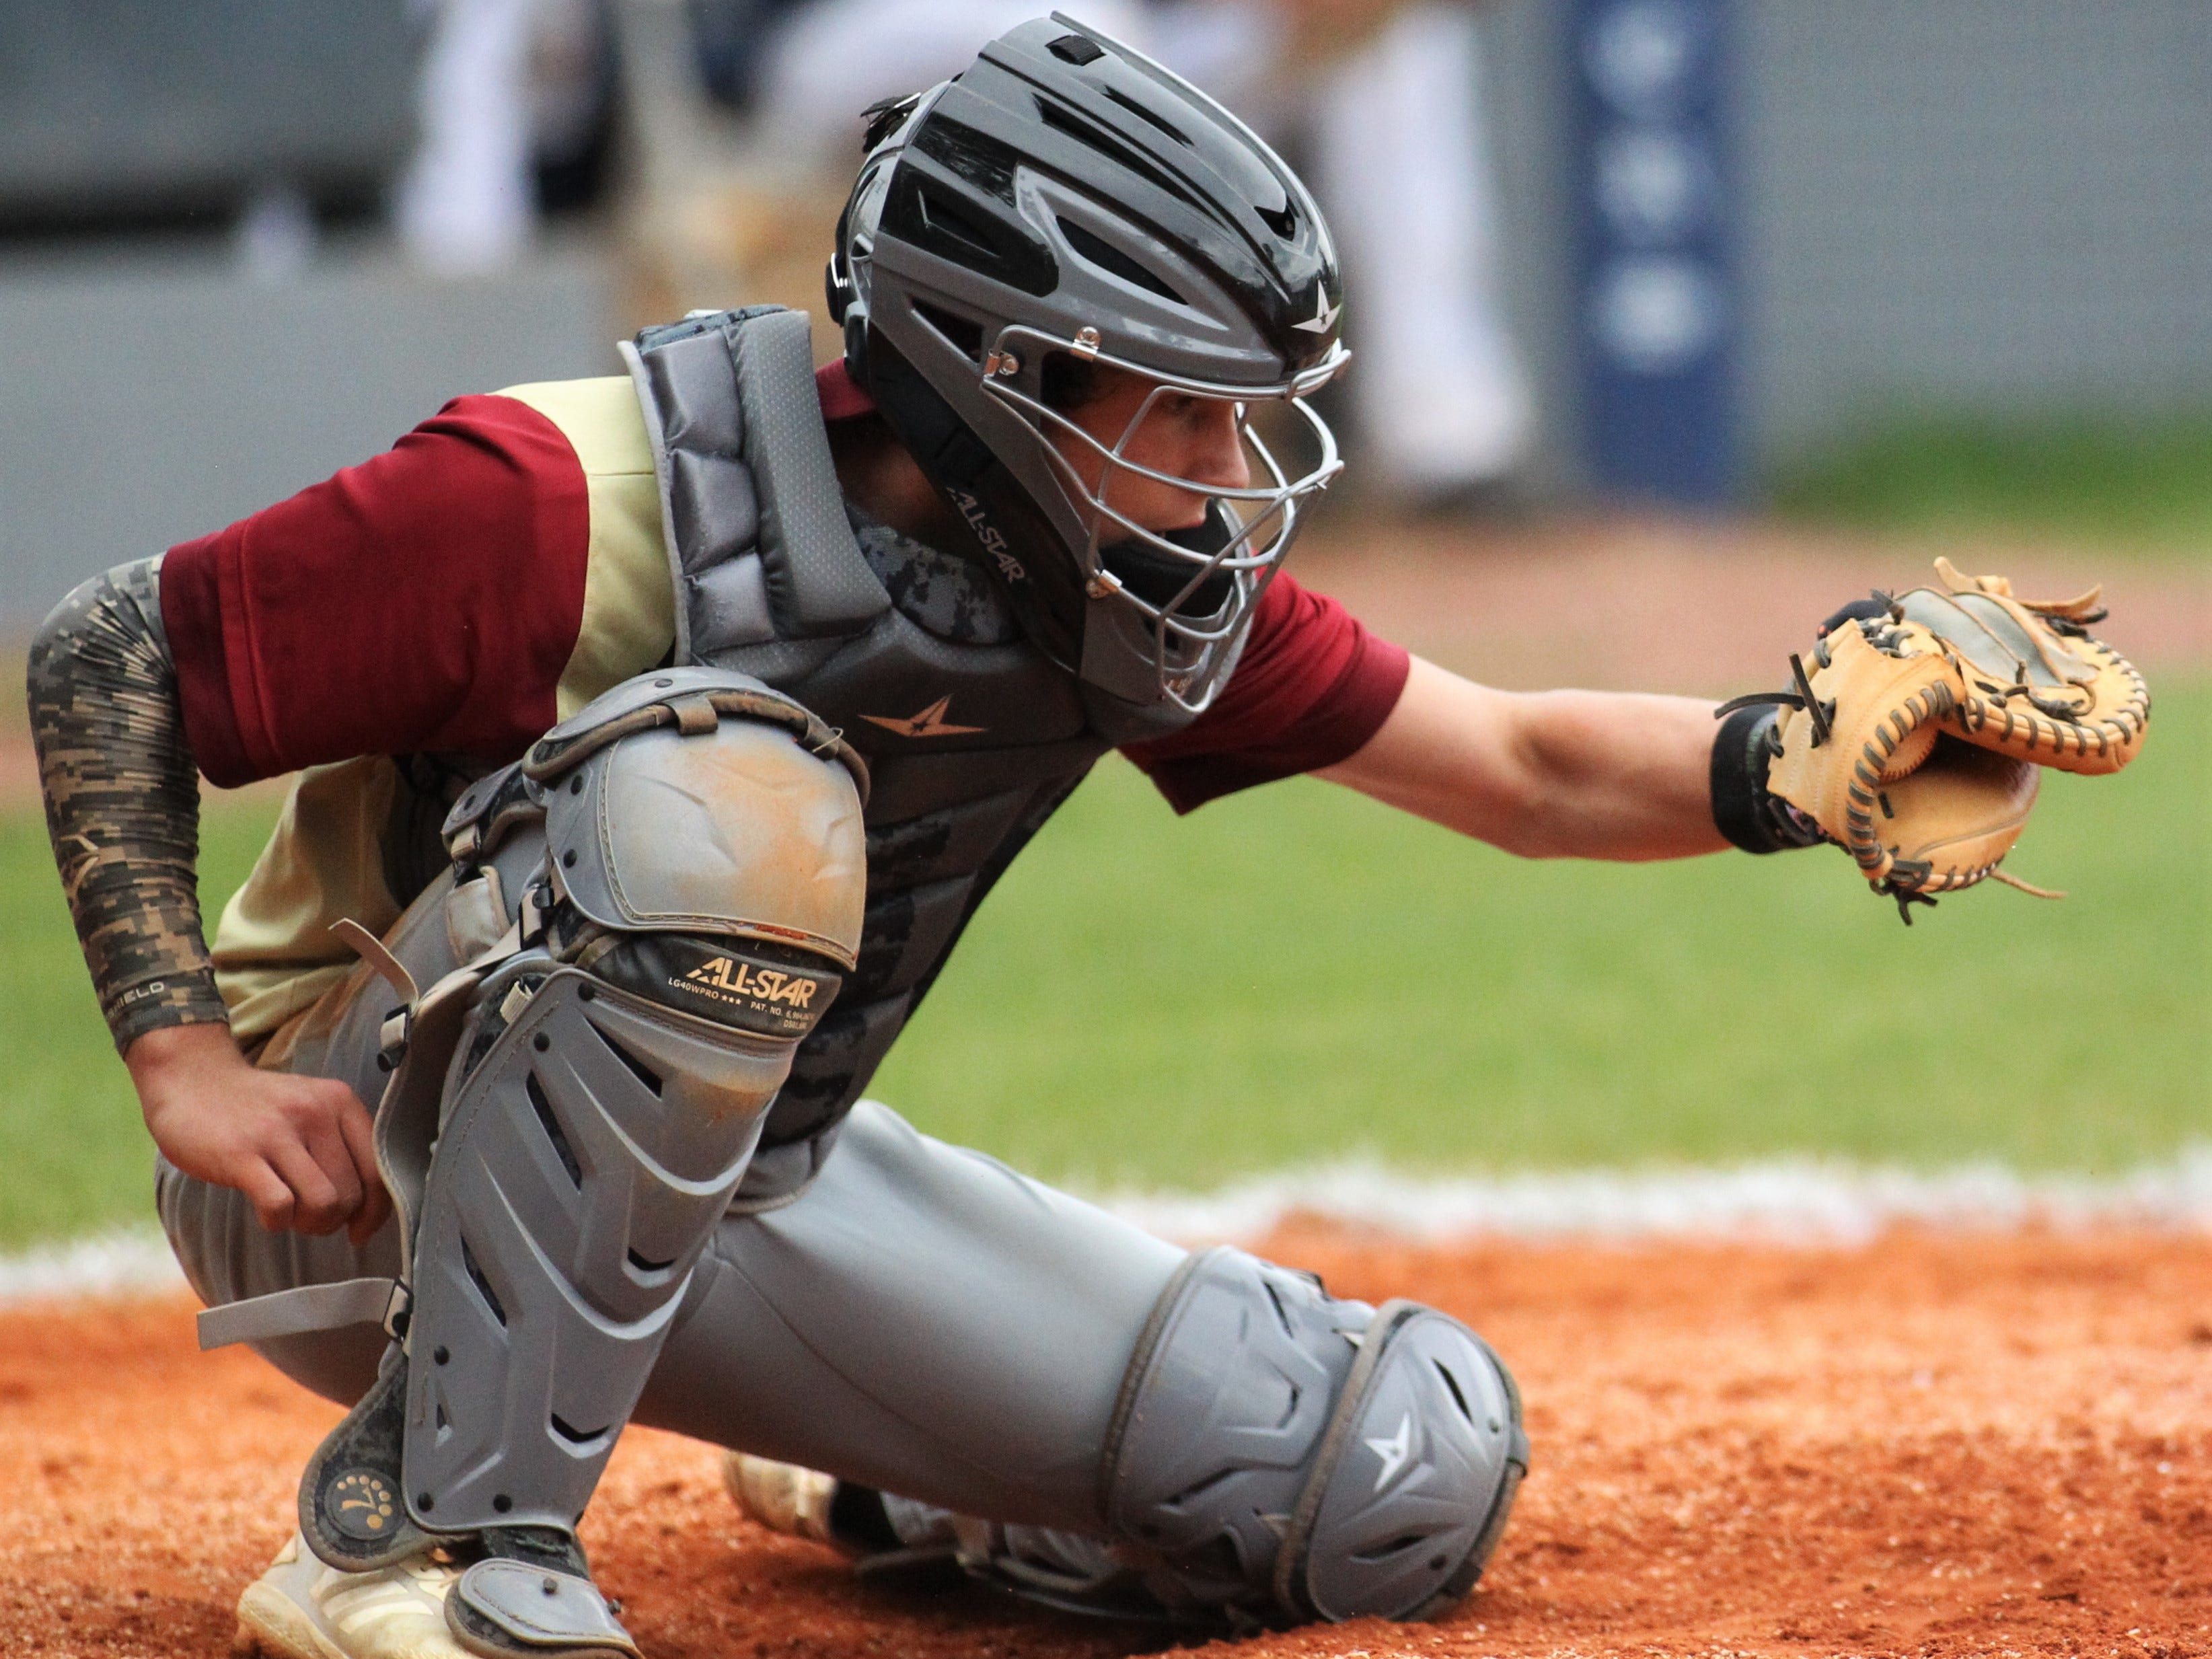 Liberty County catcher Austin Waller frames a strike as Liberty County's baseball team went on the road to beat Maclay 8-2 on Saturday, March 16, 2019. The Bulldogs played their first game following their head coach Corey Crum's tragic death six days ago.